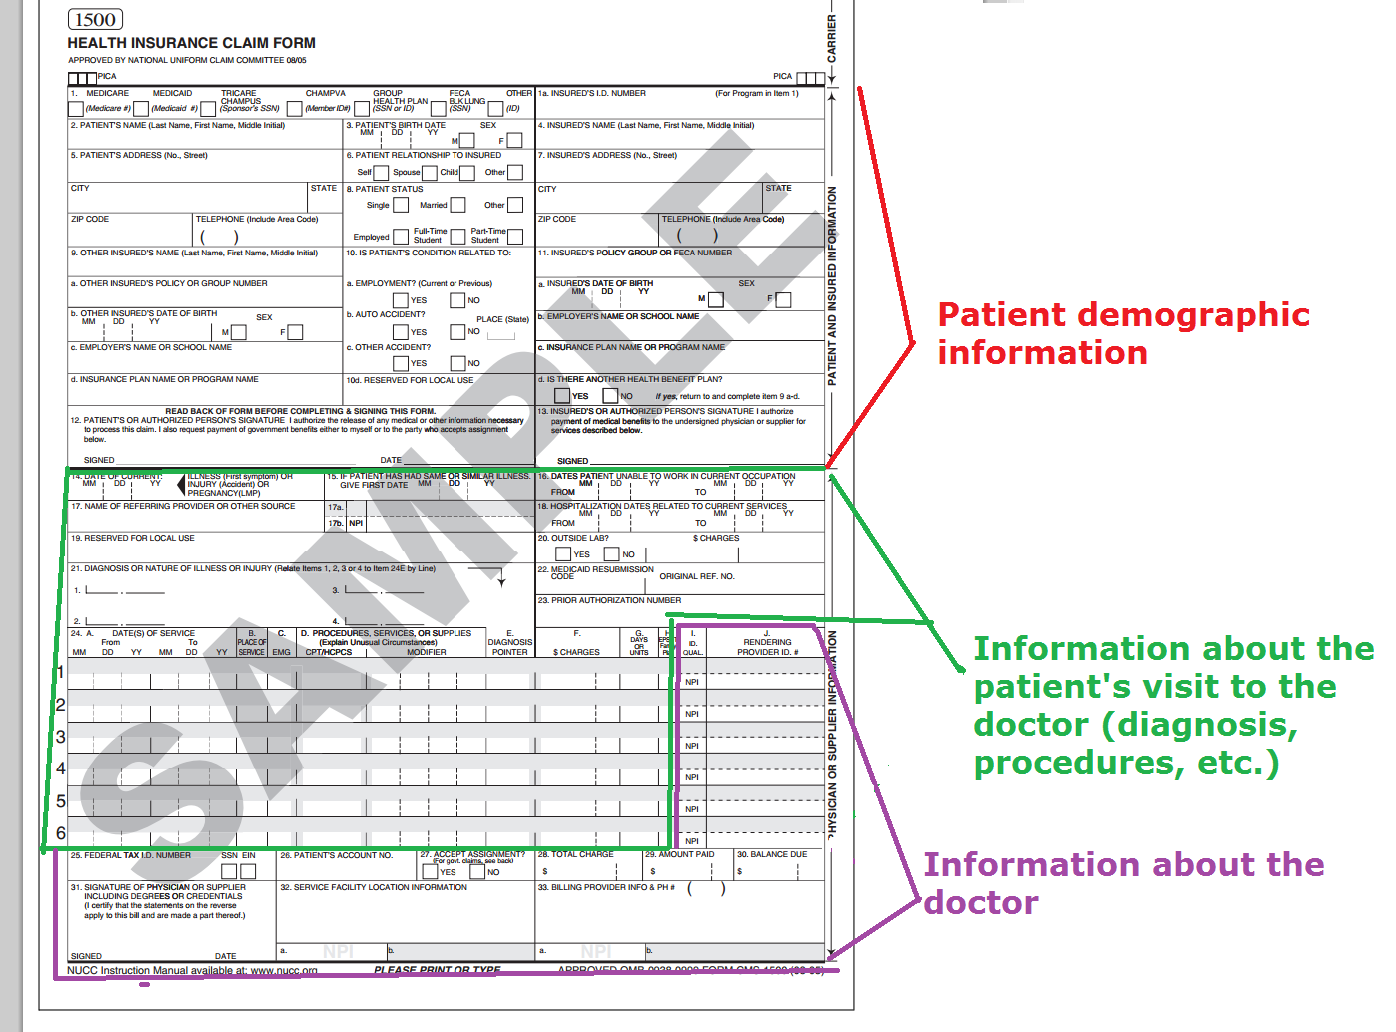 Eds Medicaid Managed Care Sheet Example Here Is An Image Of The